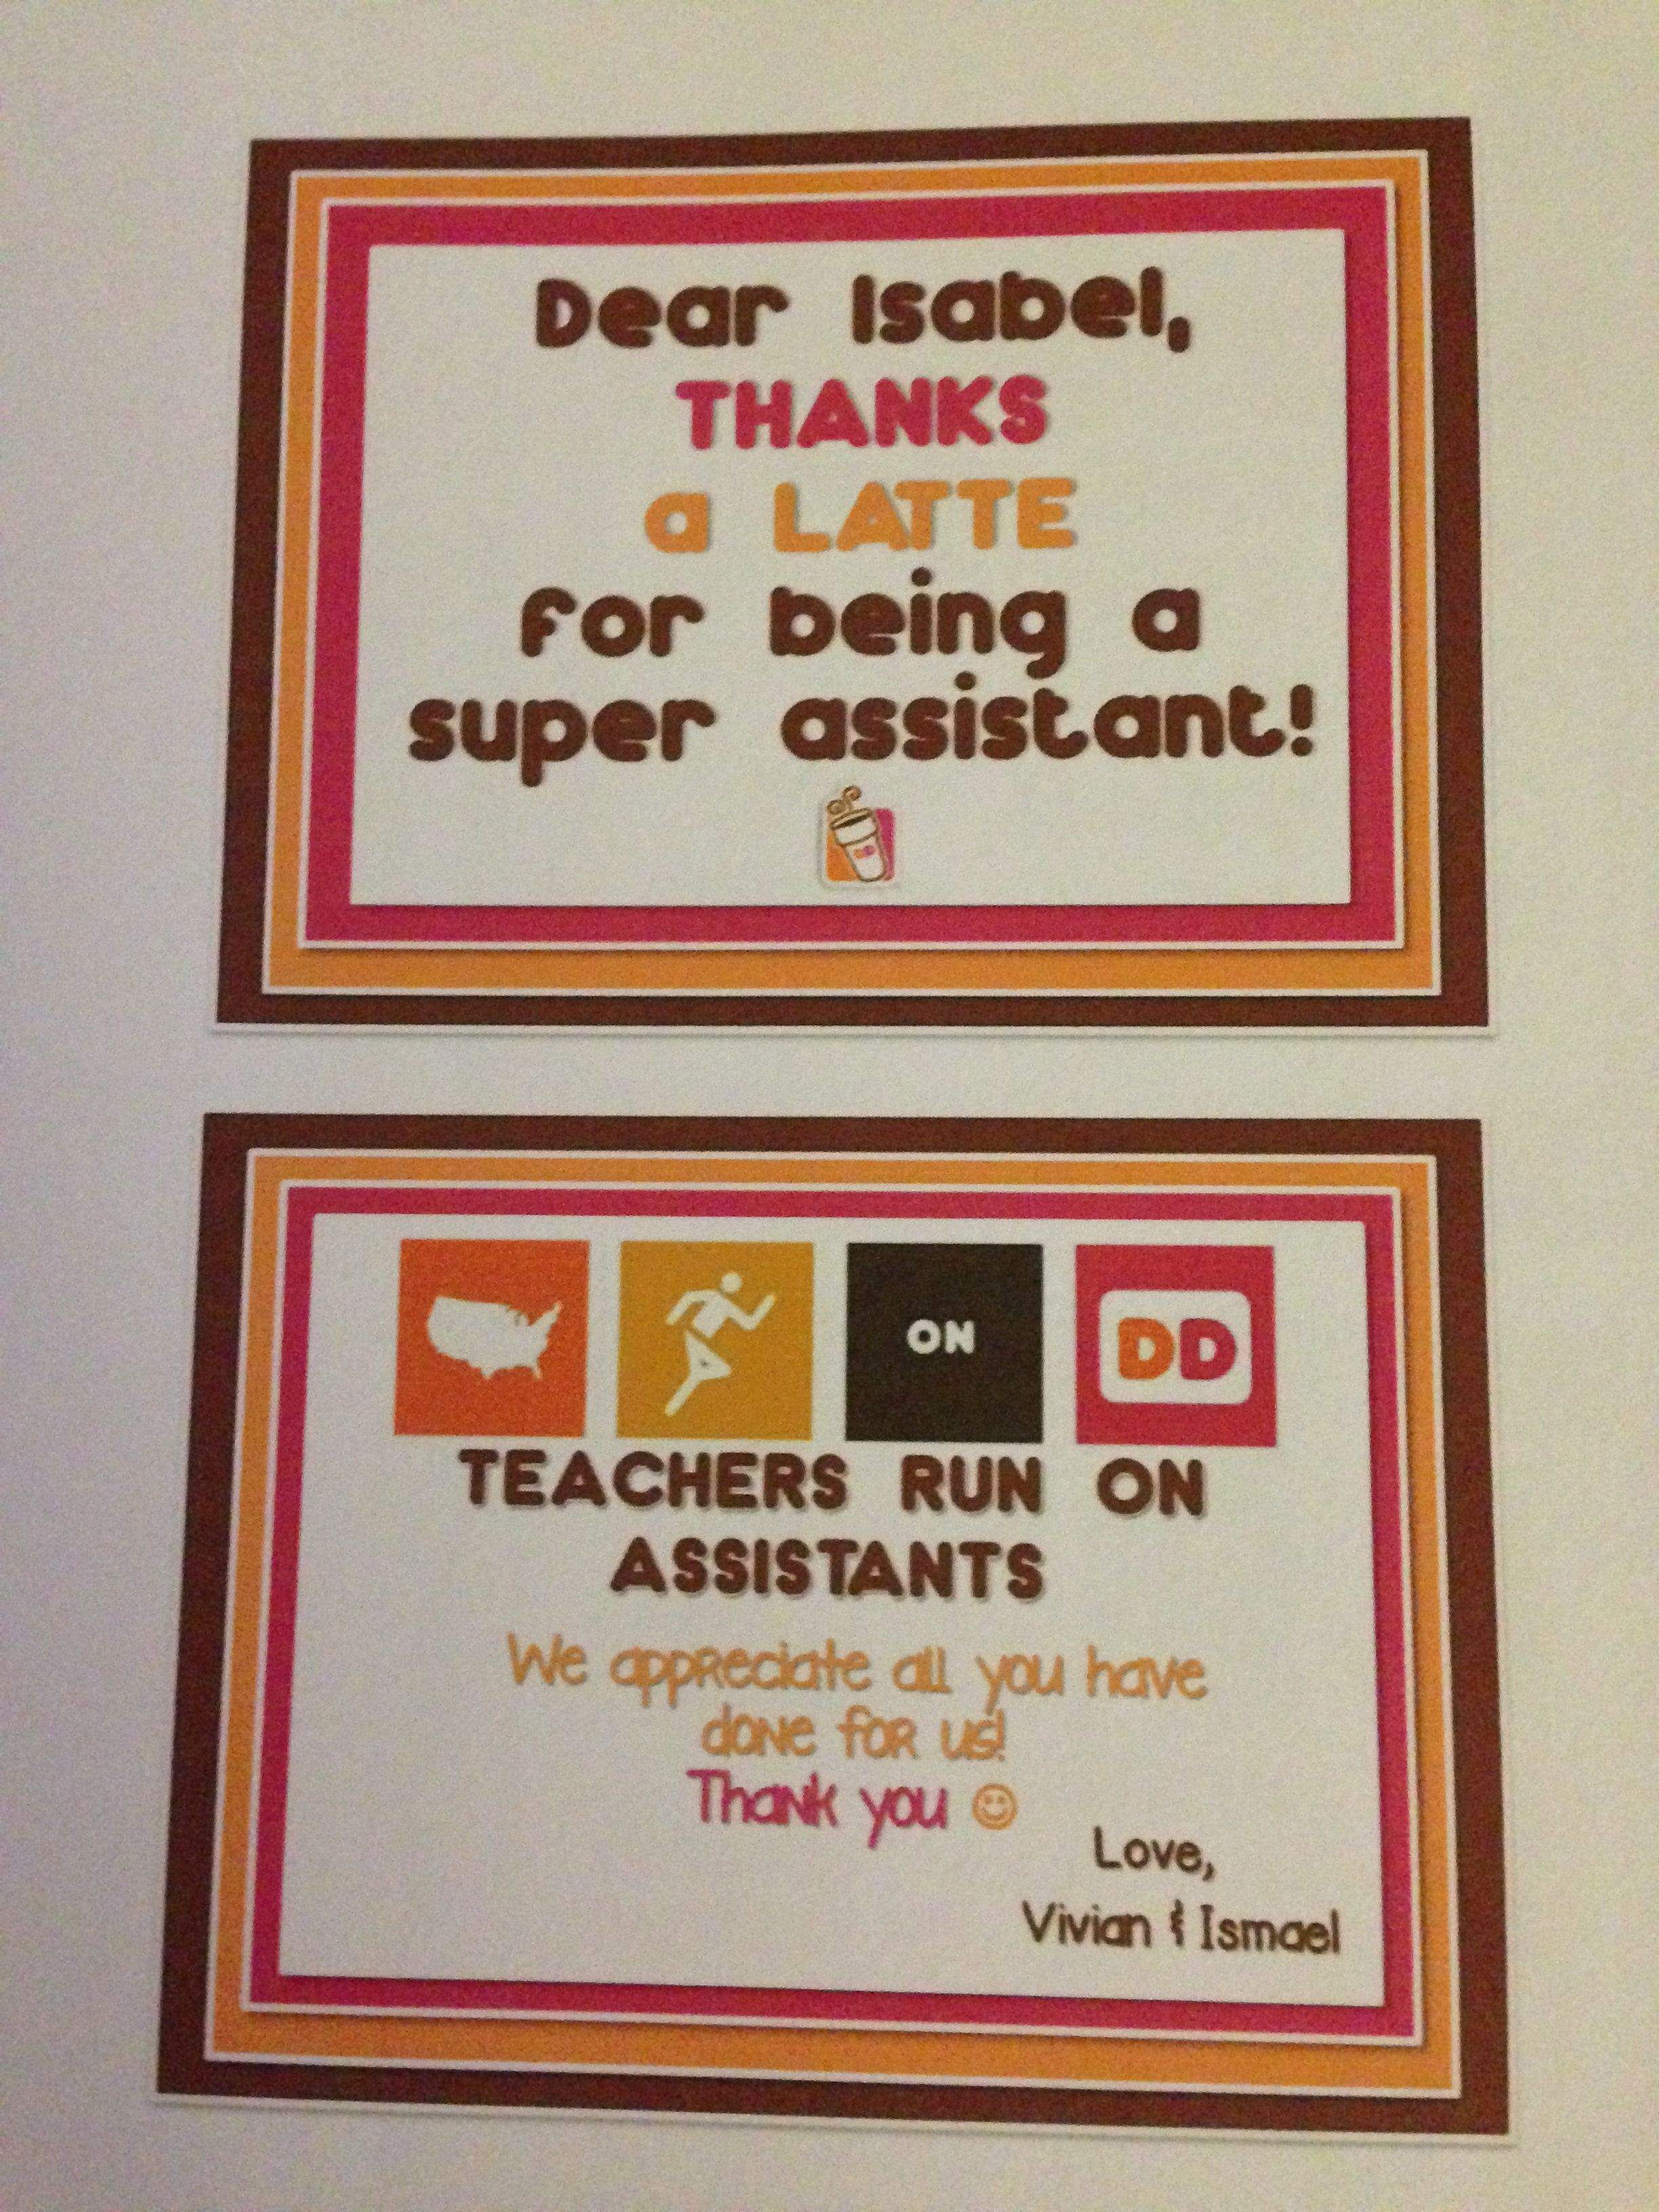 Thank You T Tag For A Teacher Assistant Eal For A